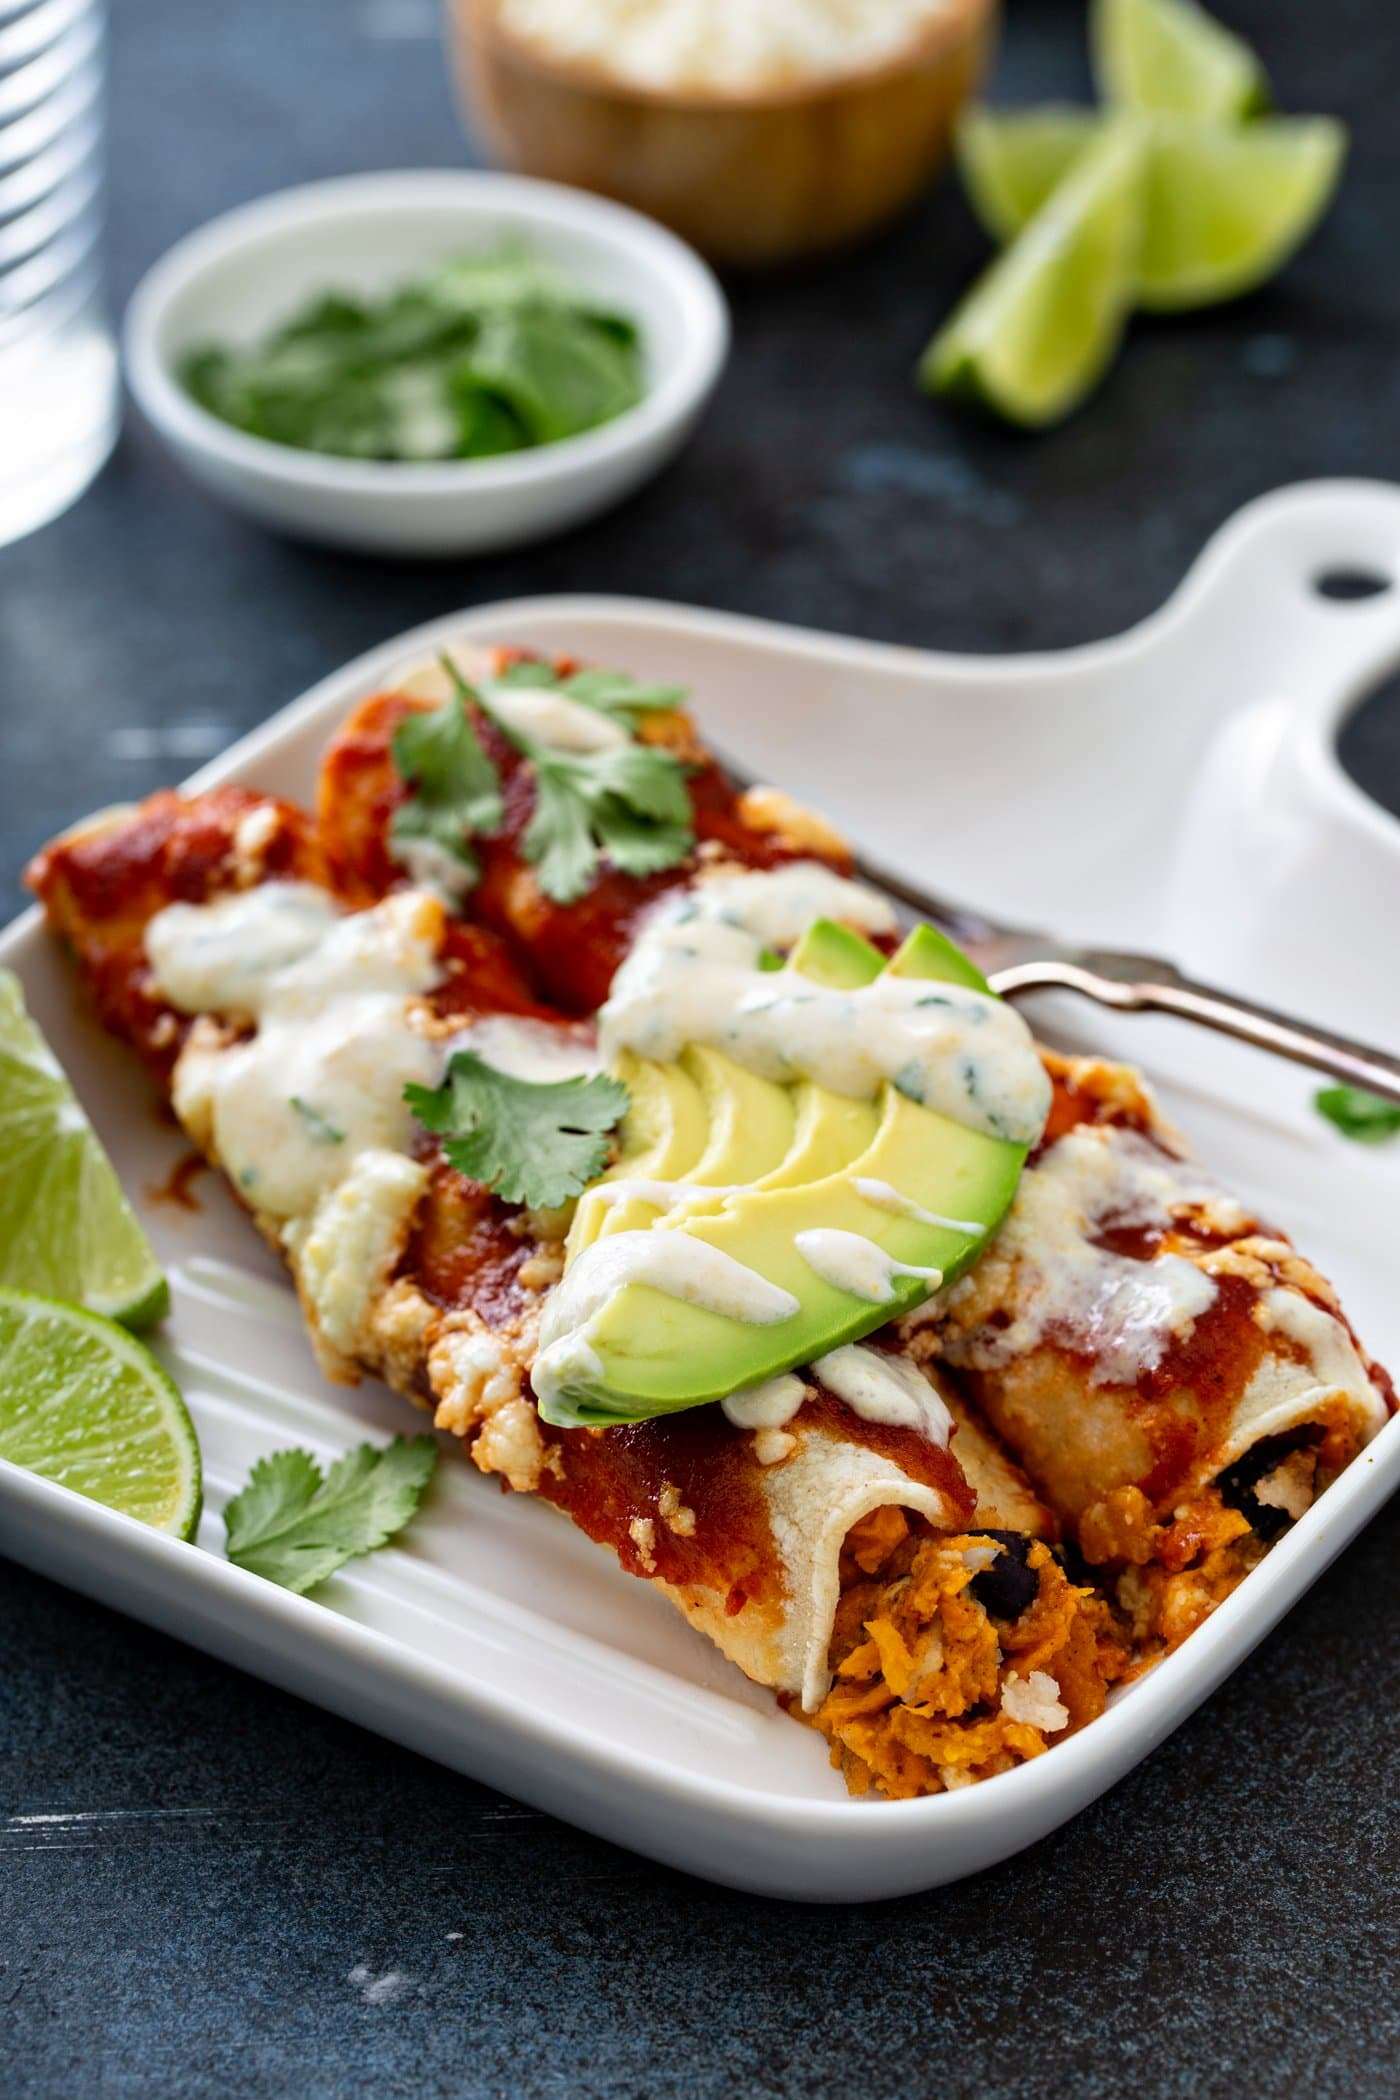 A dinner plate with two enchiladas on it. There is a fork and two lime wedges on the plate. The enchiladas have red enchilada sauce, queso fresco cheese, slices of avocado, and cilantro leaves on top. There is a sweet corn crema drizzled over the top of it.